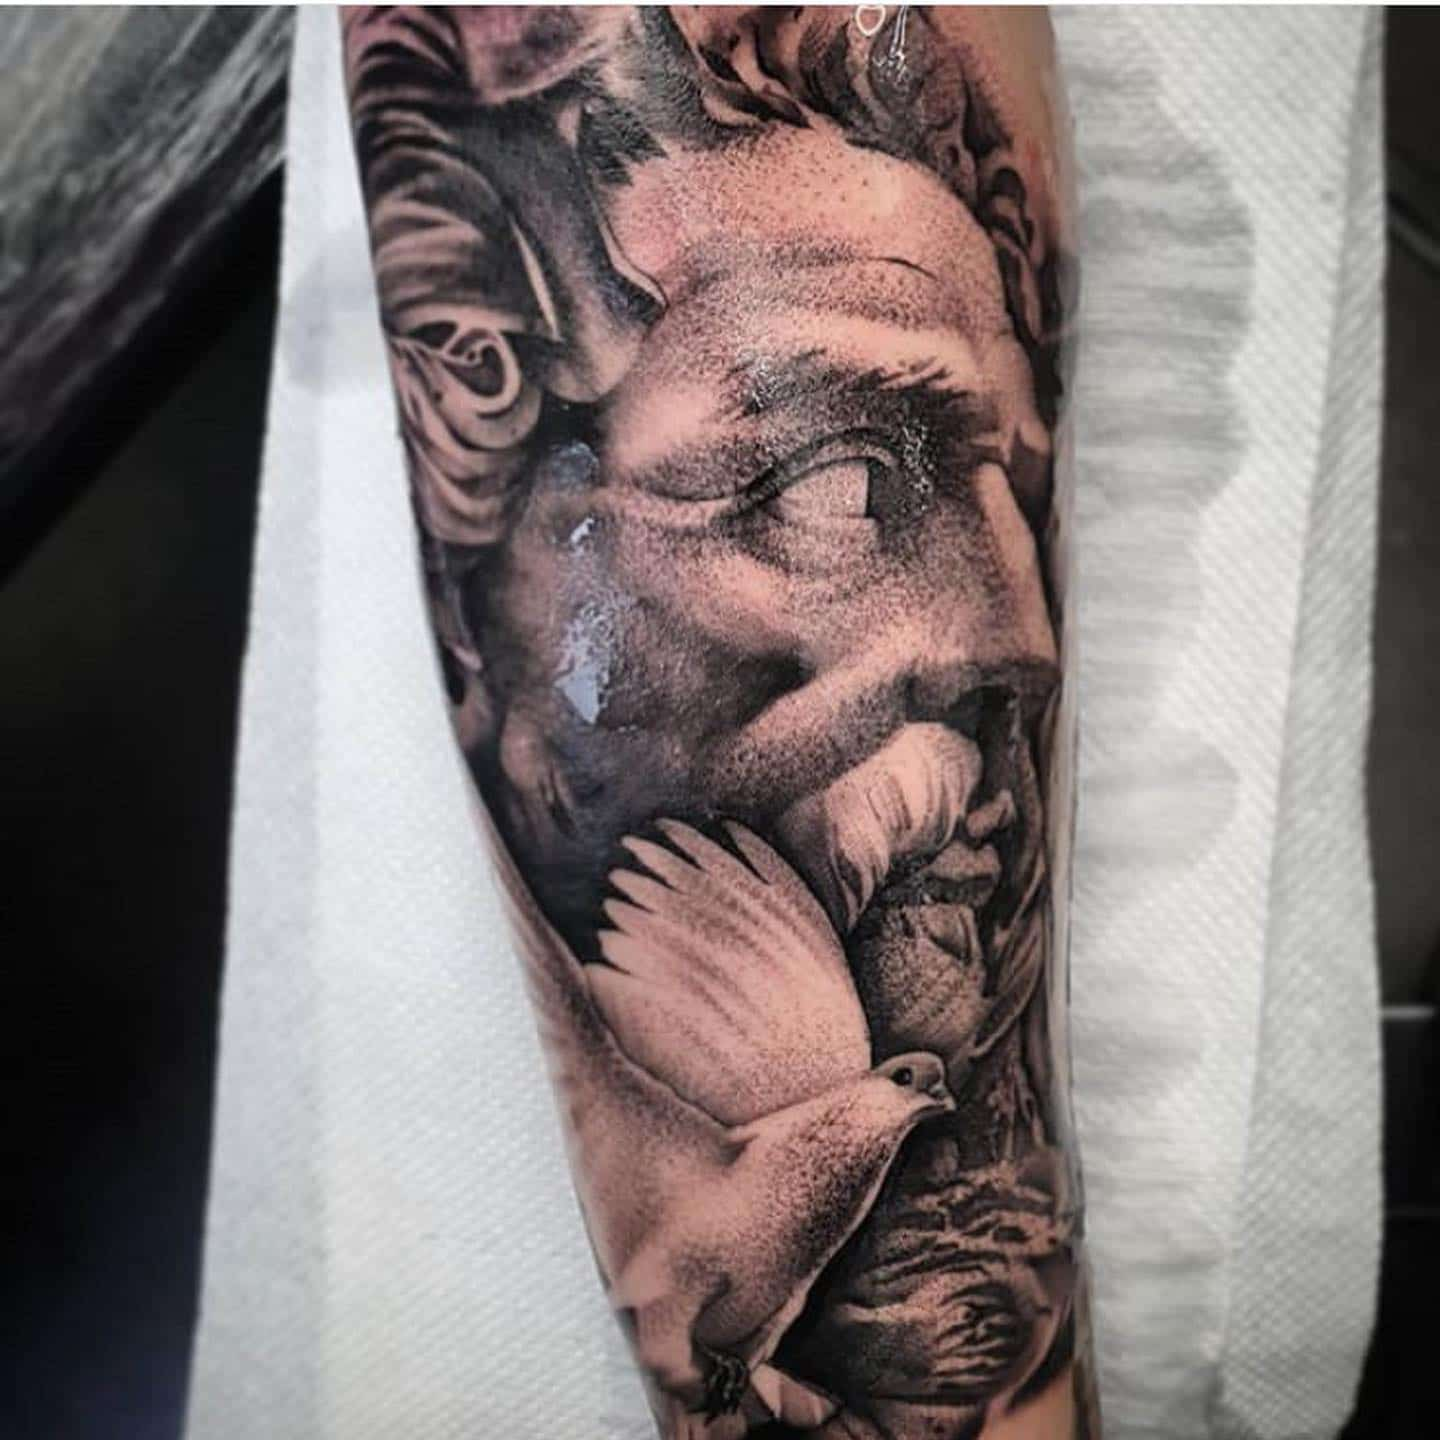 @jnelson.art is absolutely KILLING it at the moment.   Check out this amazing Zeus portrait from the other day!   We're taking bookings for him for November now 🥳 ____________________________________  studioxiii tattoos tattooed tattooflash blackworkers bandg realism realistictattoo skull skinartmag skulltattoo lion liontattoo tattooartist edinburghtattooartist edinburghtattoo girltattoo blackclaw uktta ttt eztattoocartridges ukbta skindeep txtooing tattoomediaink thebesttattooartist tattoosnob tattooartistic  _____________________________________